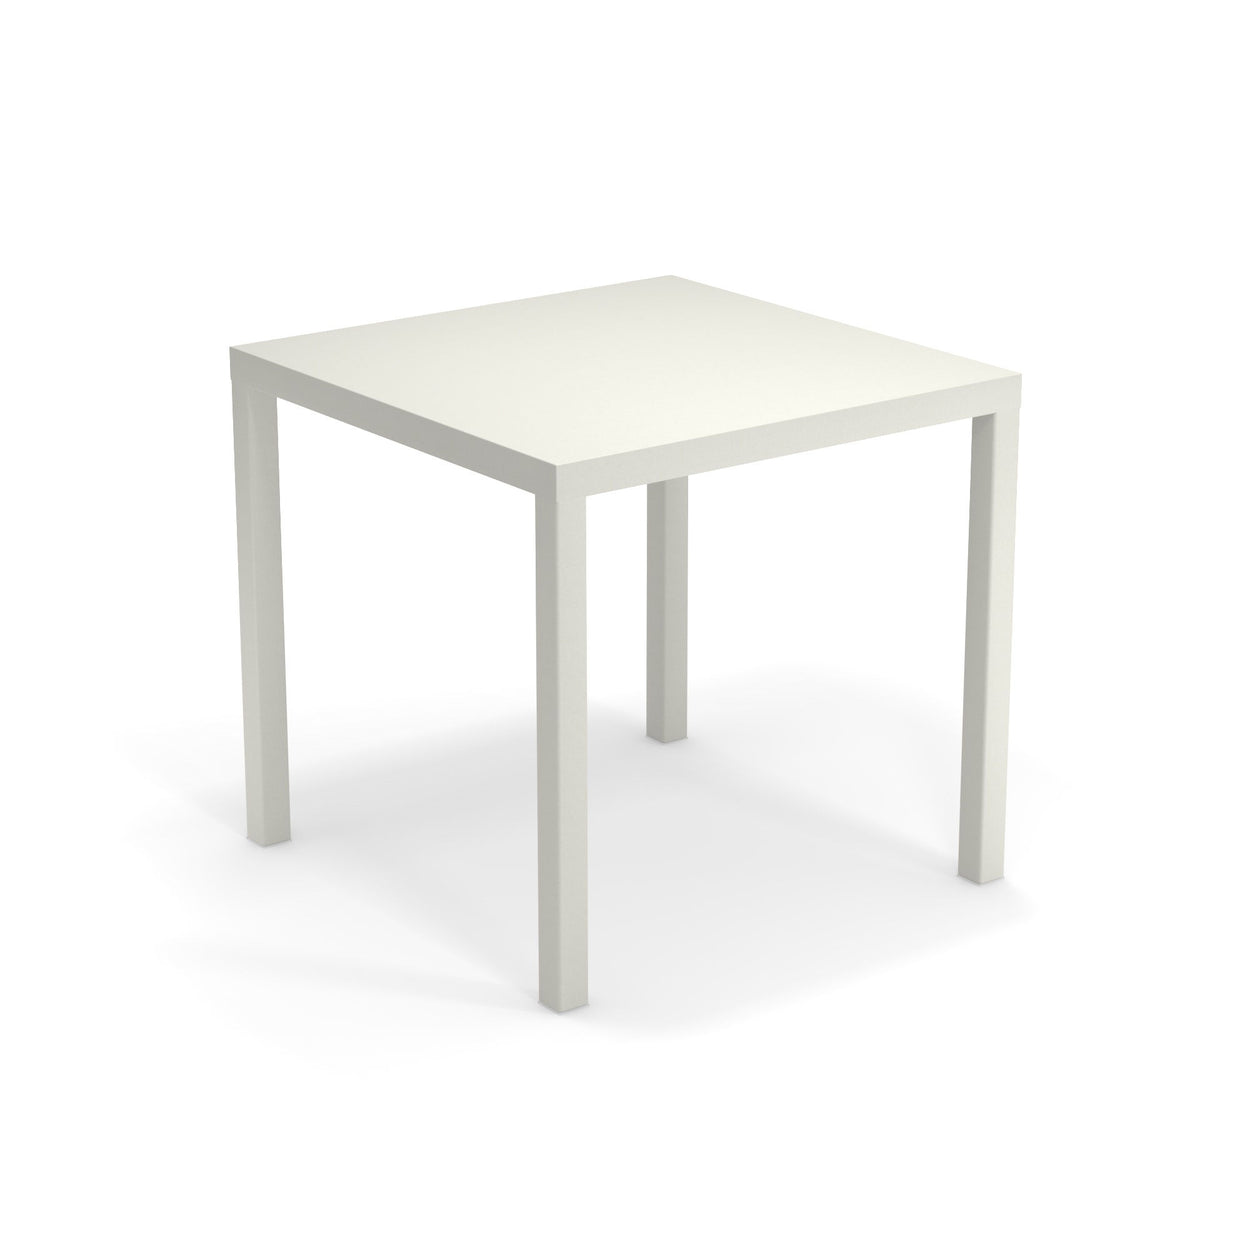 EMU Nova Square Table 80 x 80 cm (Set of 2)